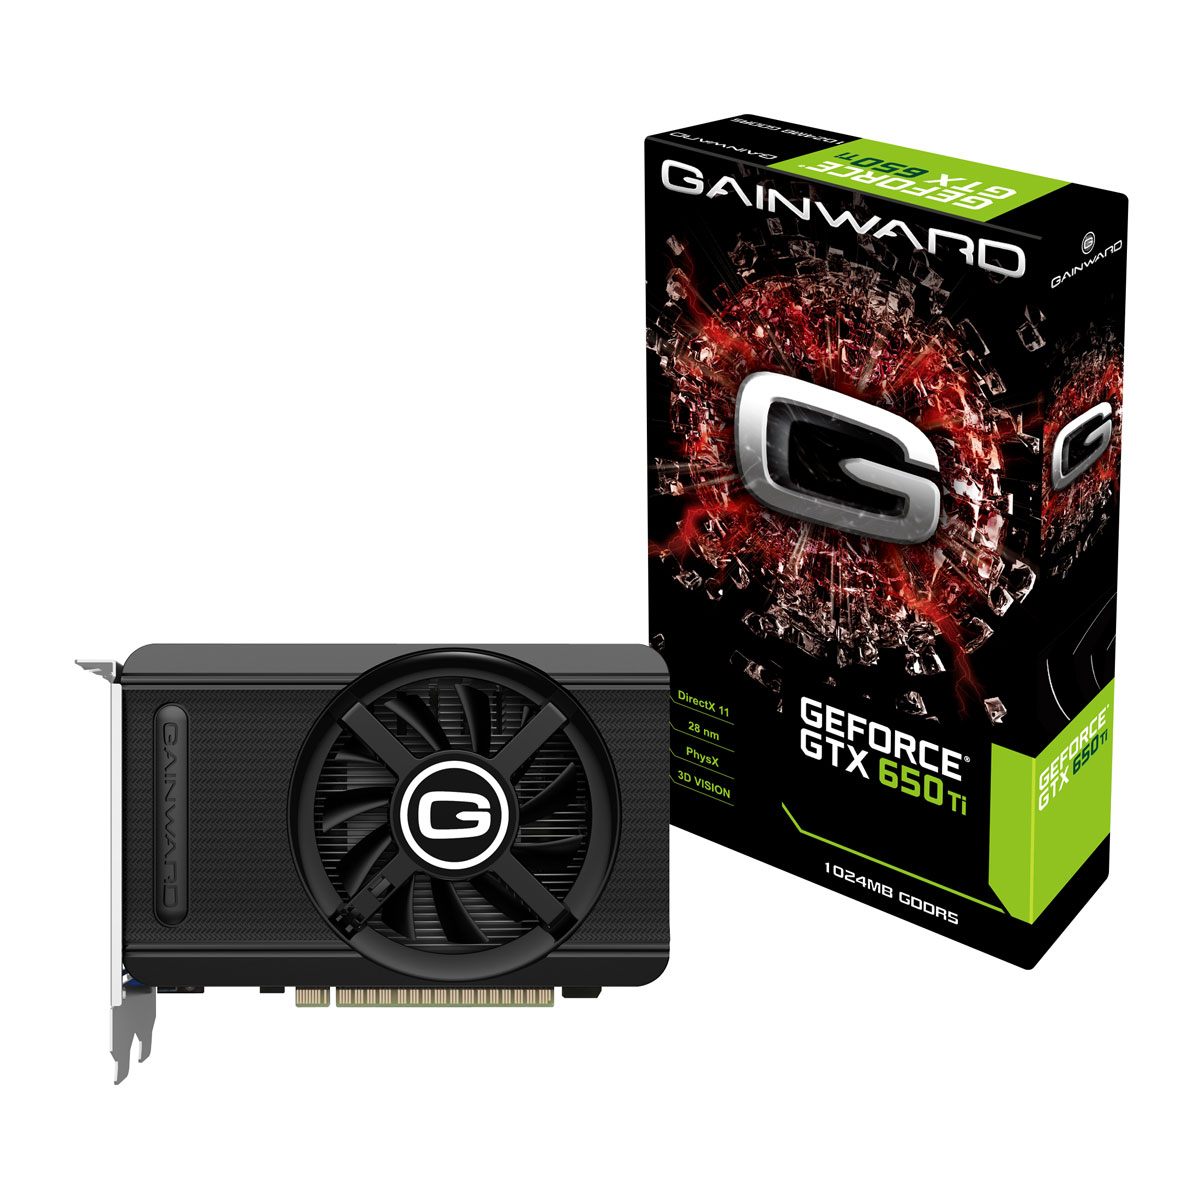 Carte graphique Gainward GeForce GTX 650 Ti 1 GB 1024 Mo DVI/Mini HDMI - PCI Express (NVIDIA GeForce avec CUDA GTX 650 Ti)